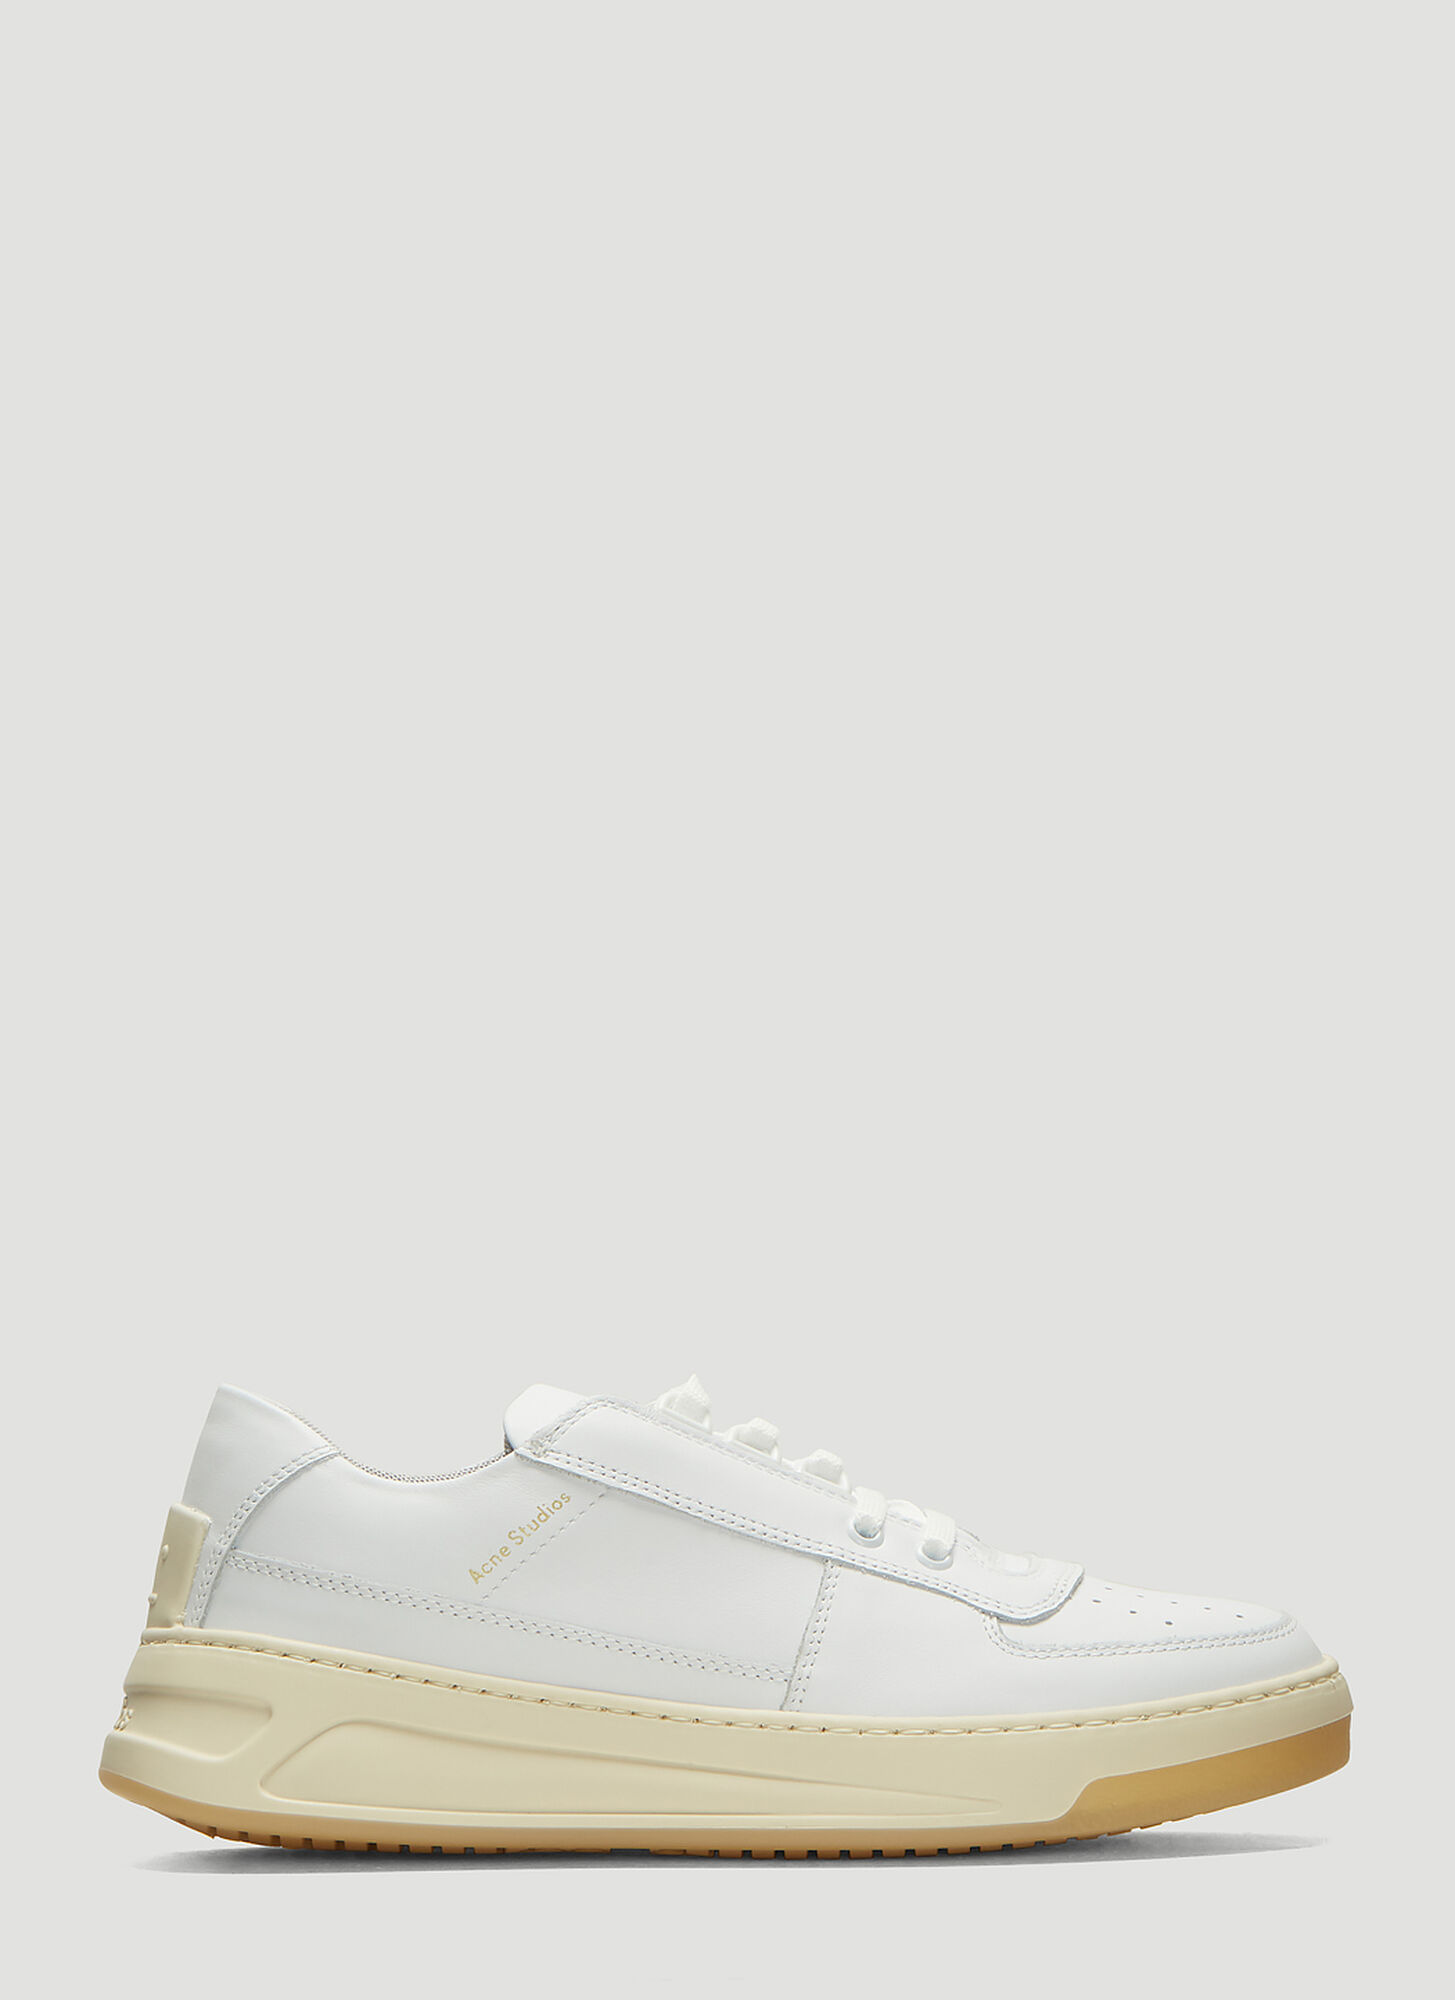 Acne Studios Steffey Lace Up Fastening Sneakers in White